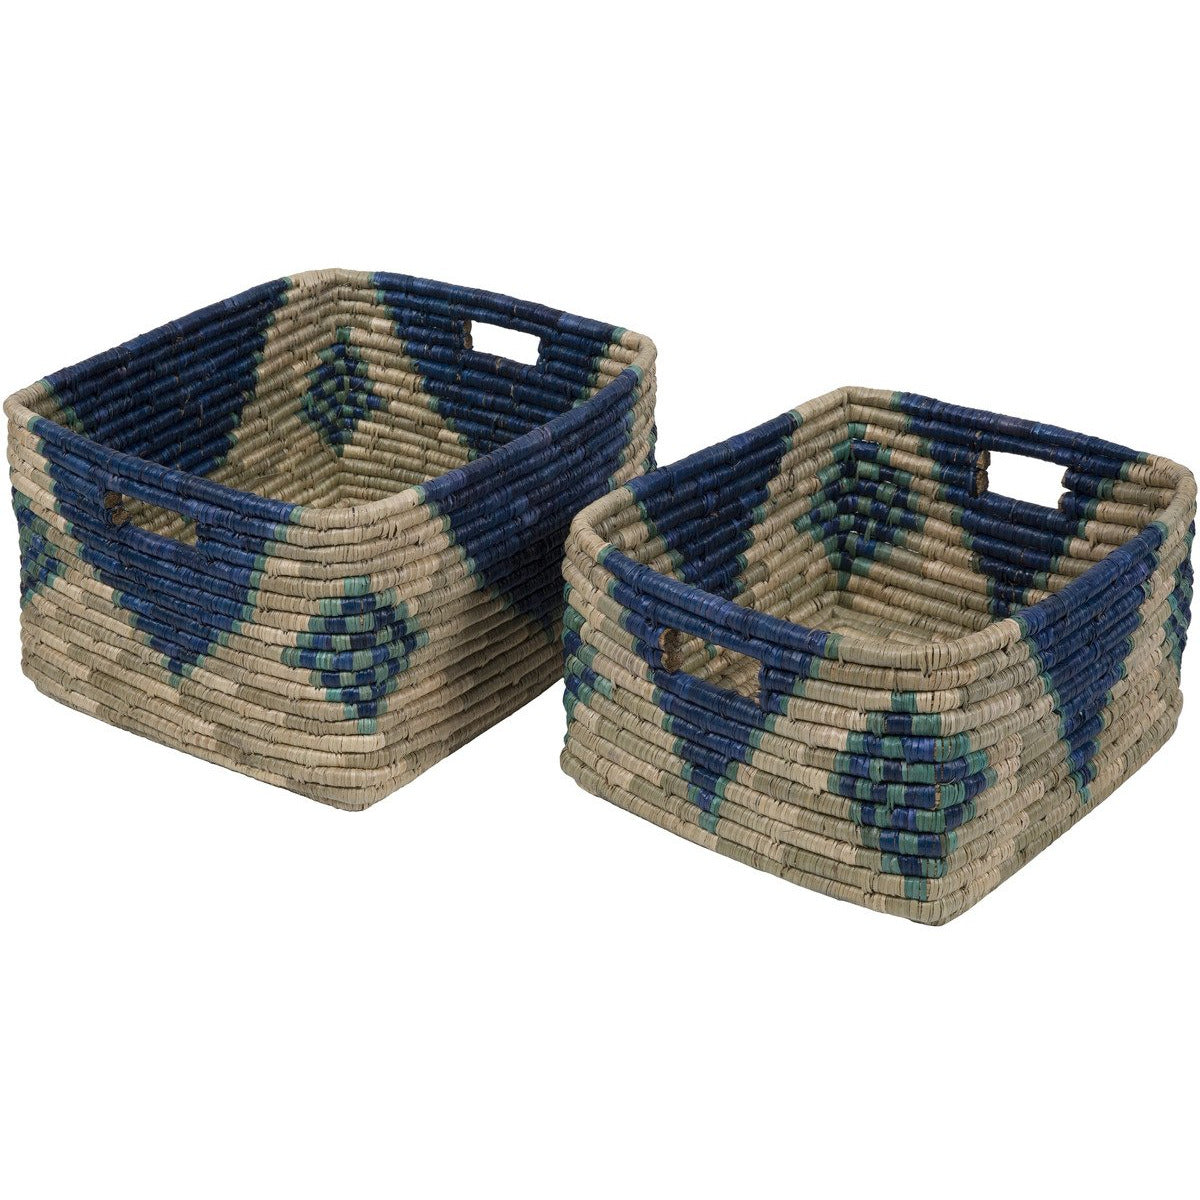 Baskets & Boxes - Ferry FRY-001 Decorative Basket